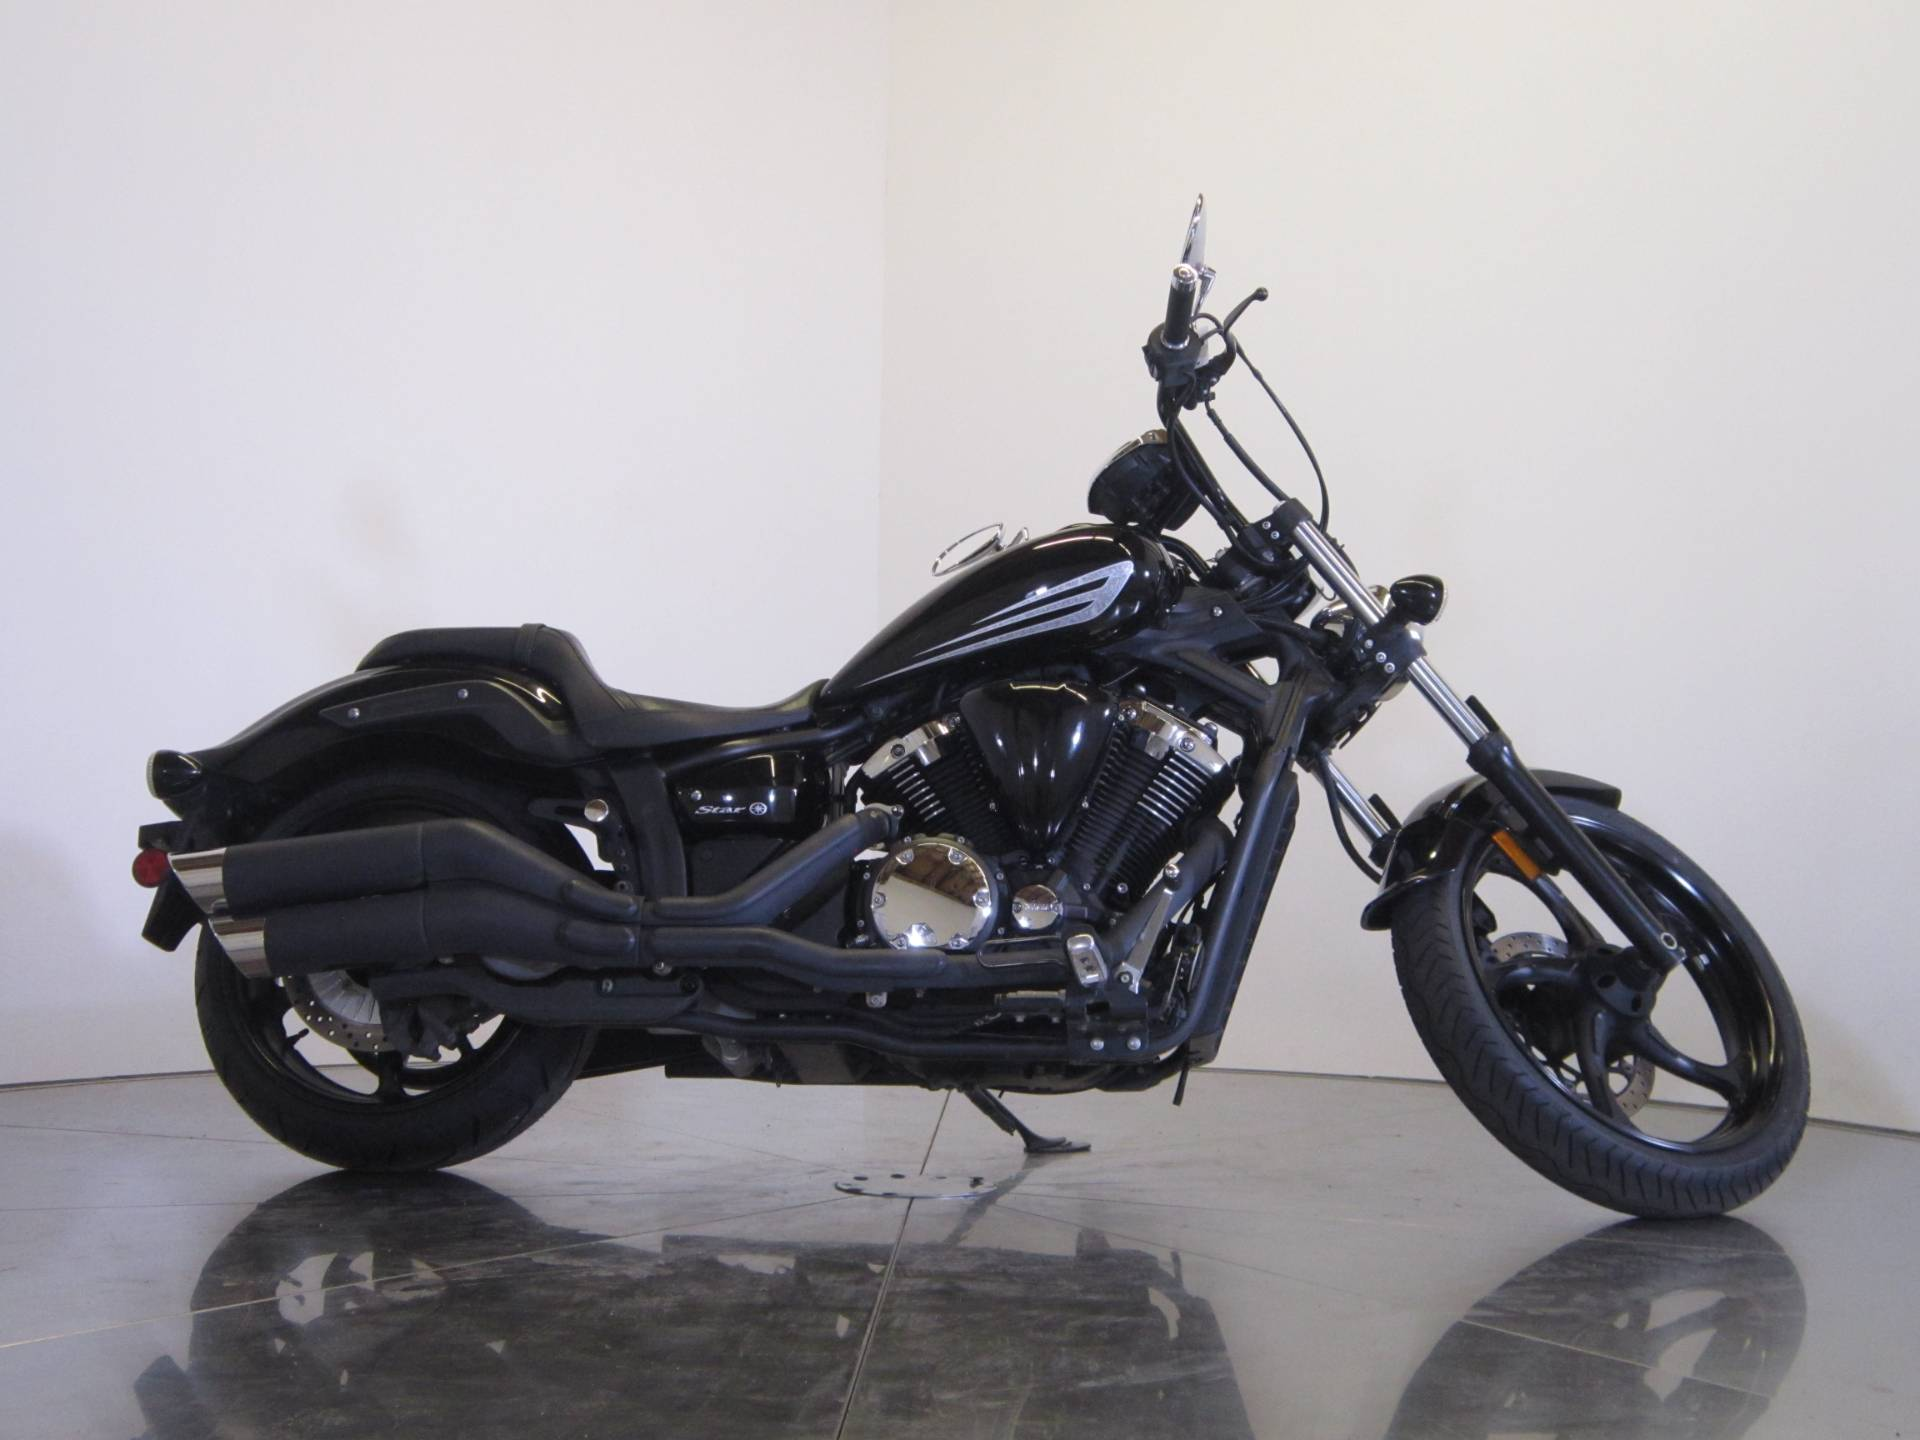 Used 2011 Yamaha Stryker Motorcycles In Greenwood Village